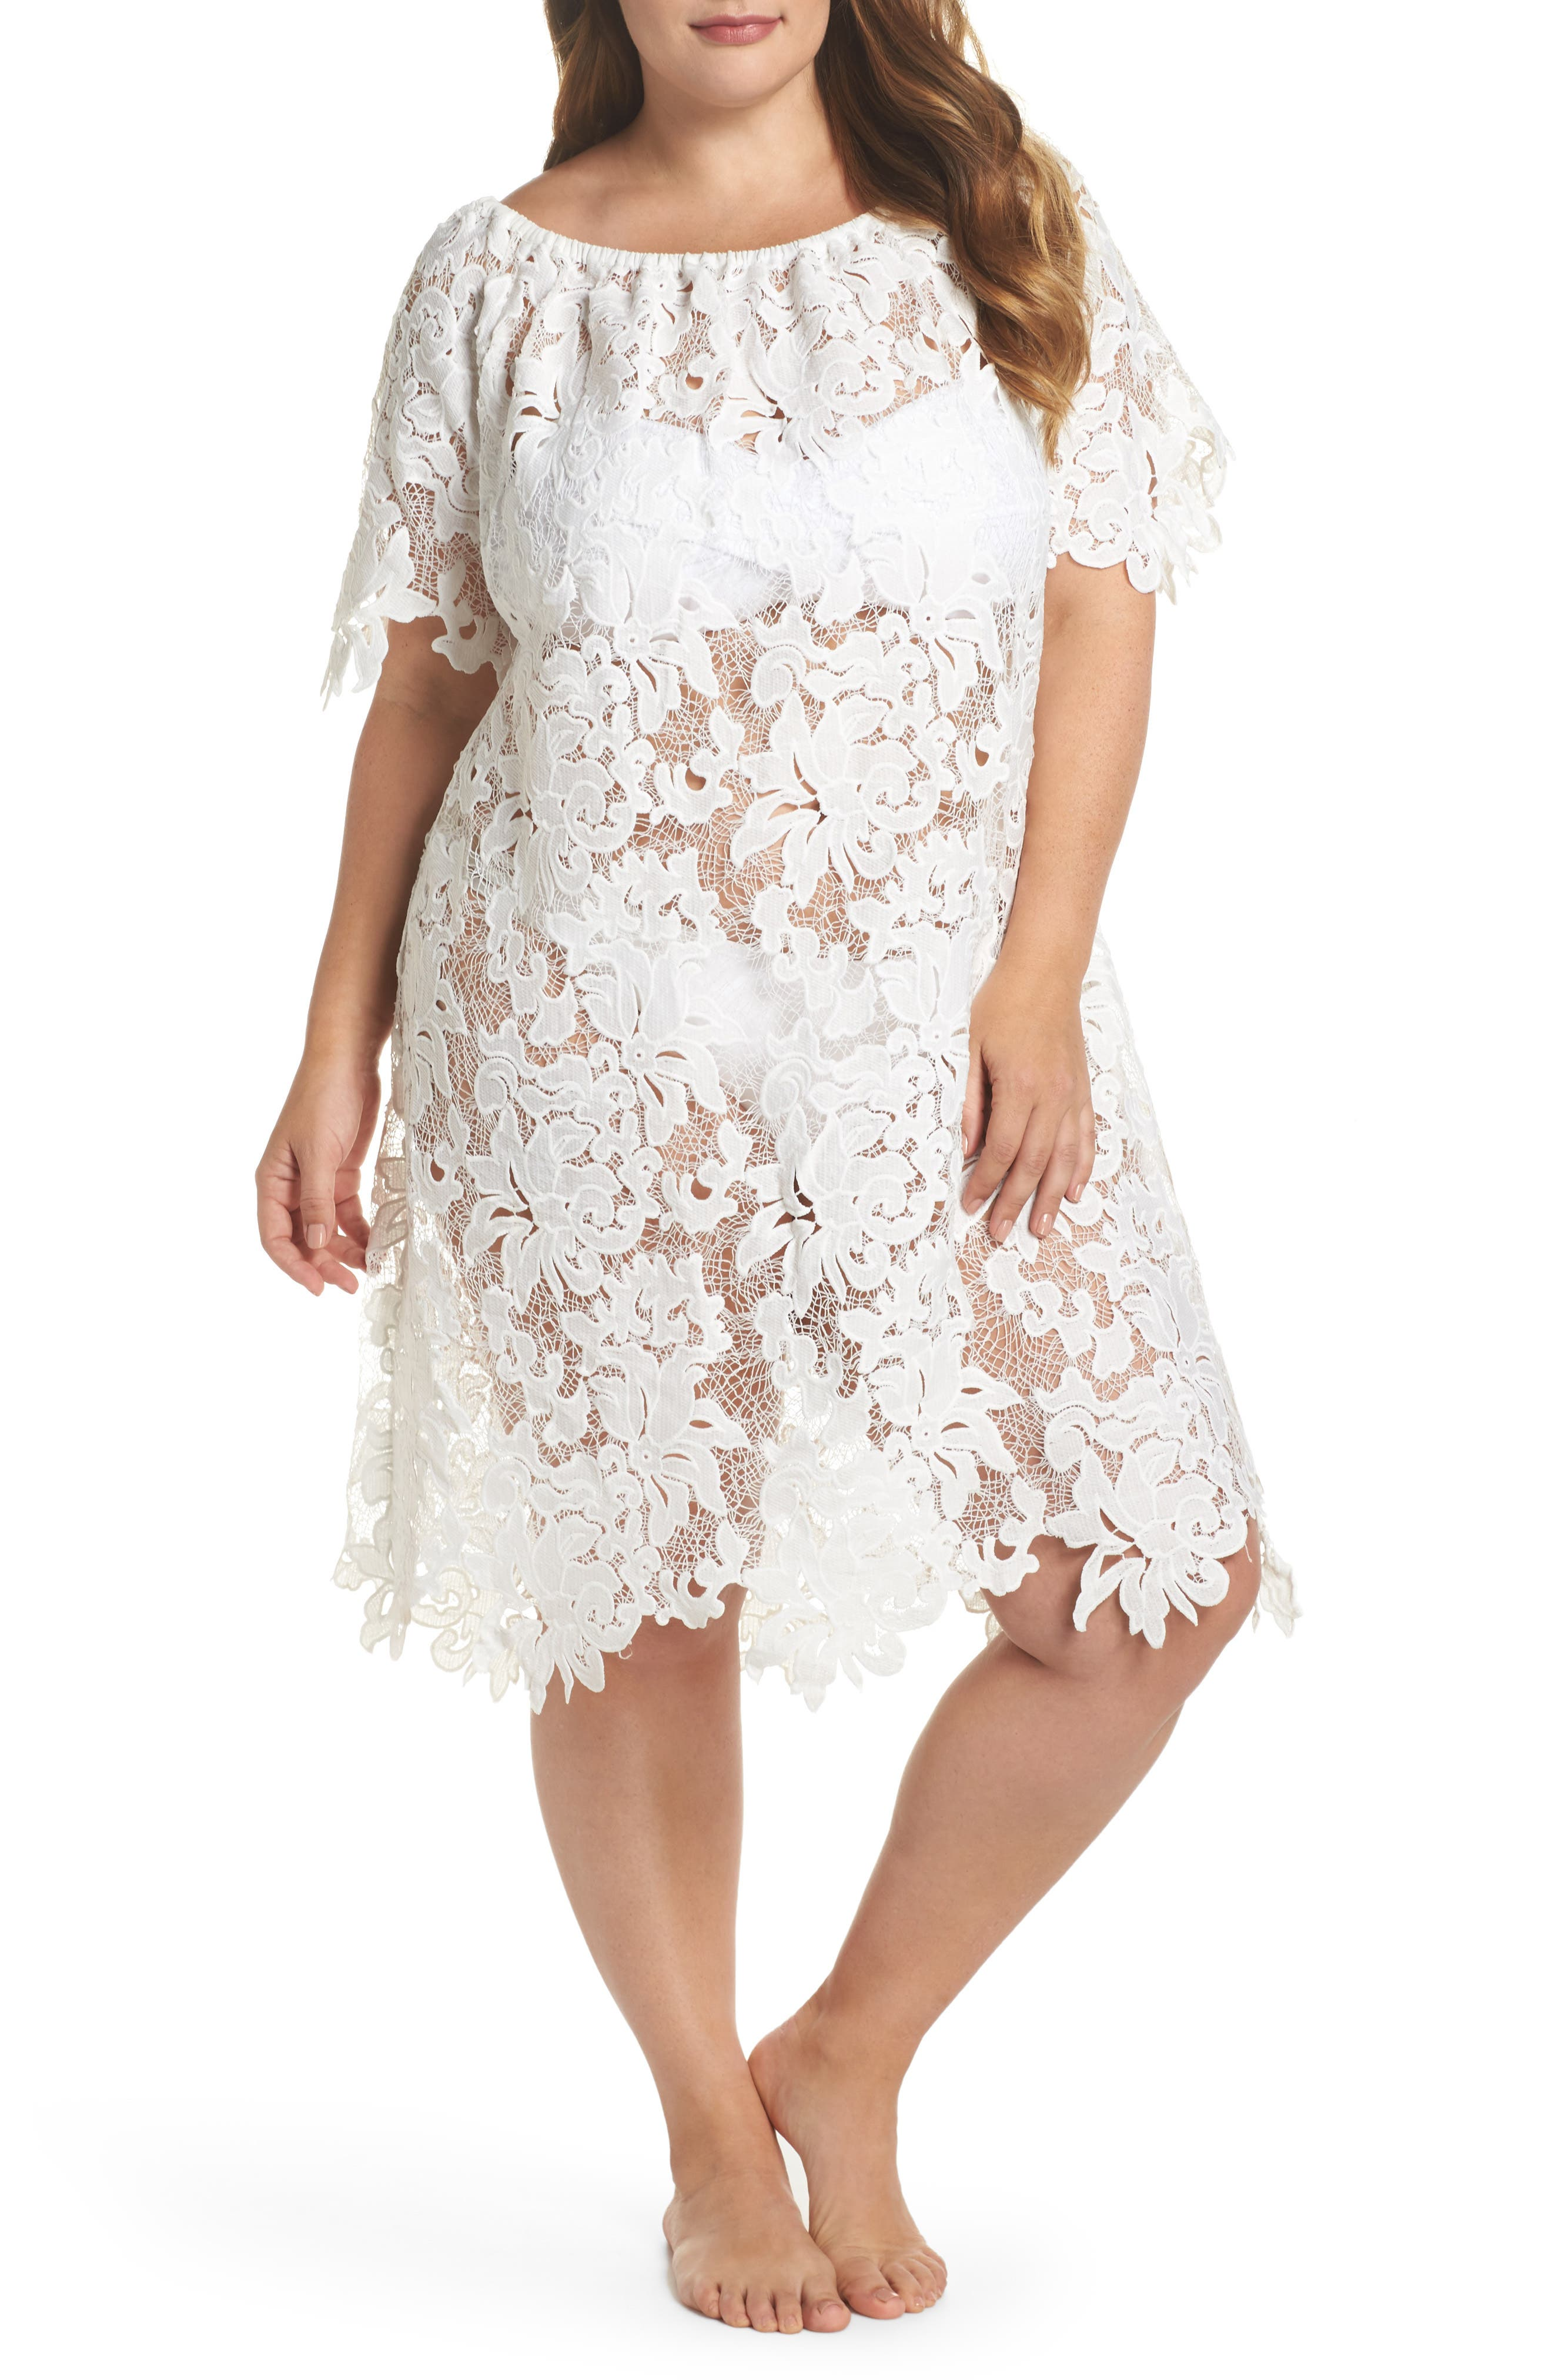 Muche et Muchette Ode Lace Cover-Up Dress (Plus Size)